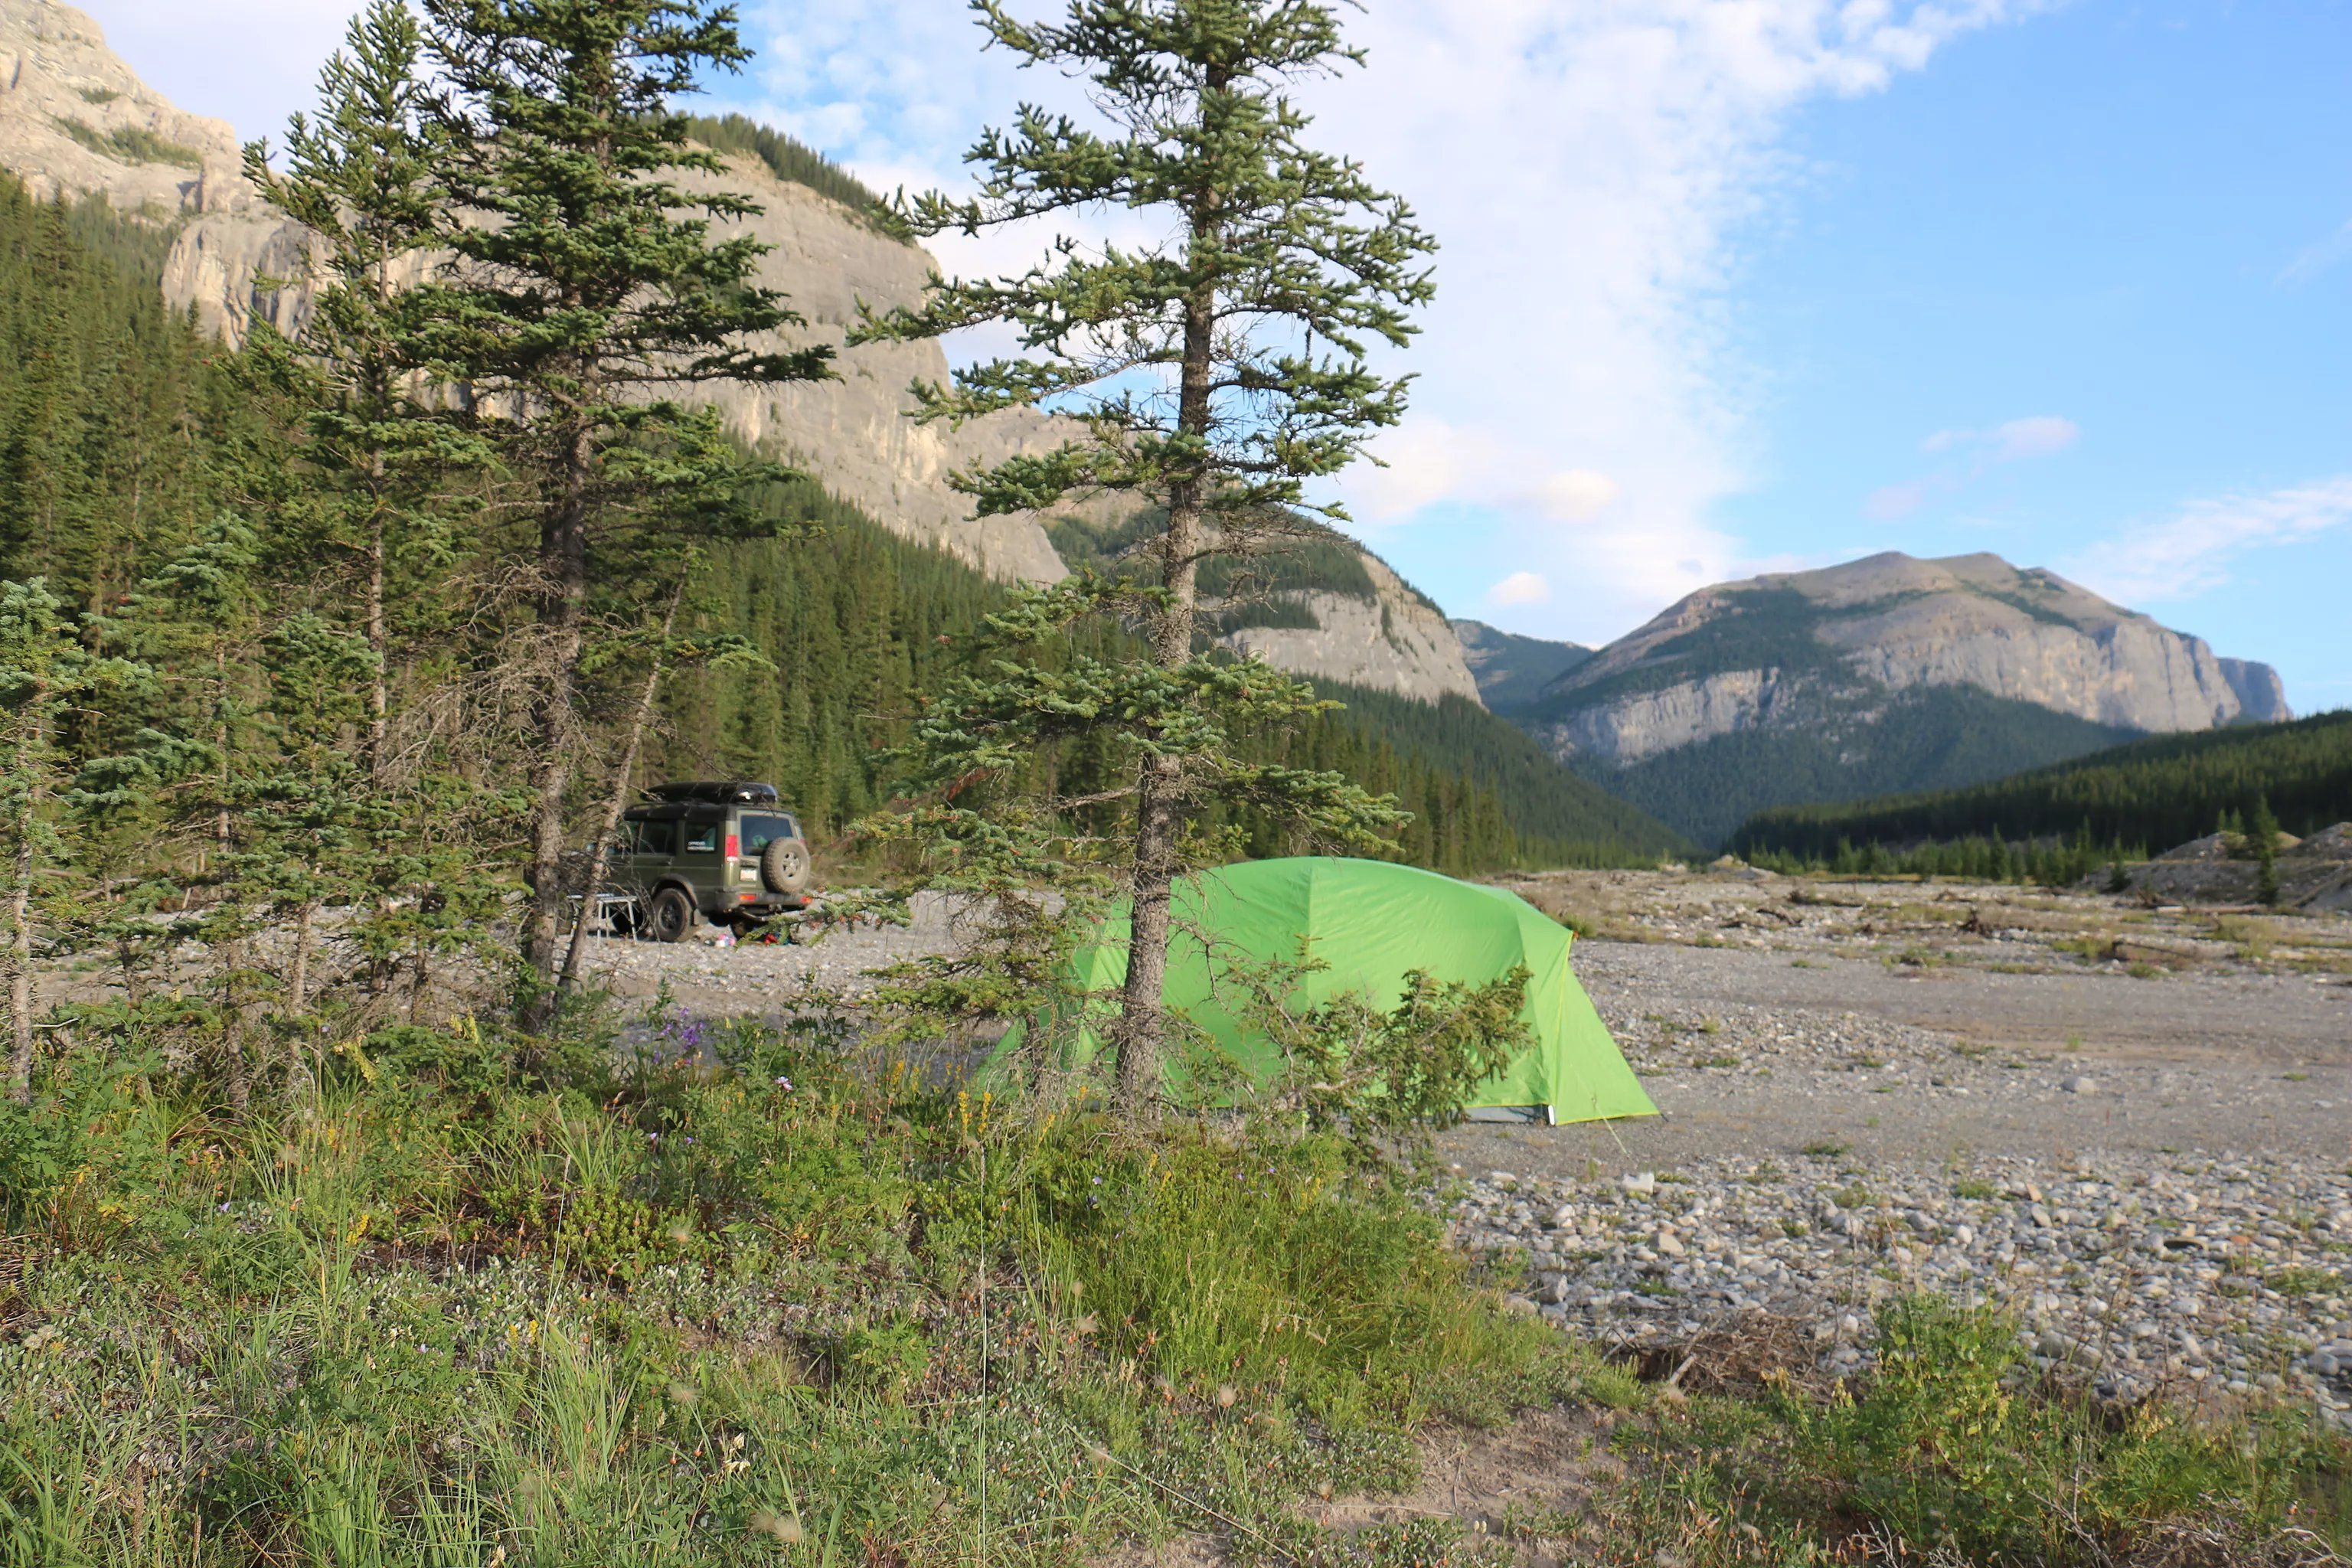 Free Camping across Canada | Living on Life